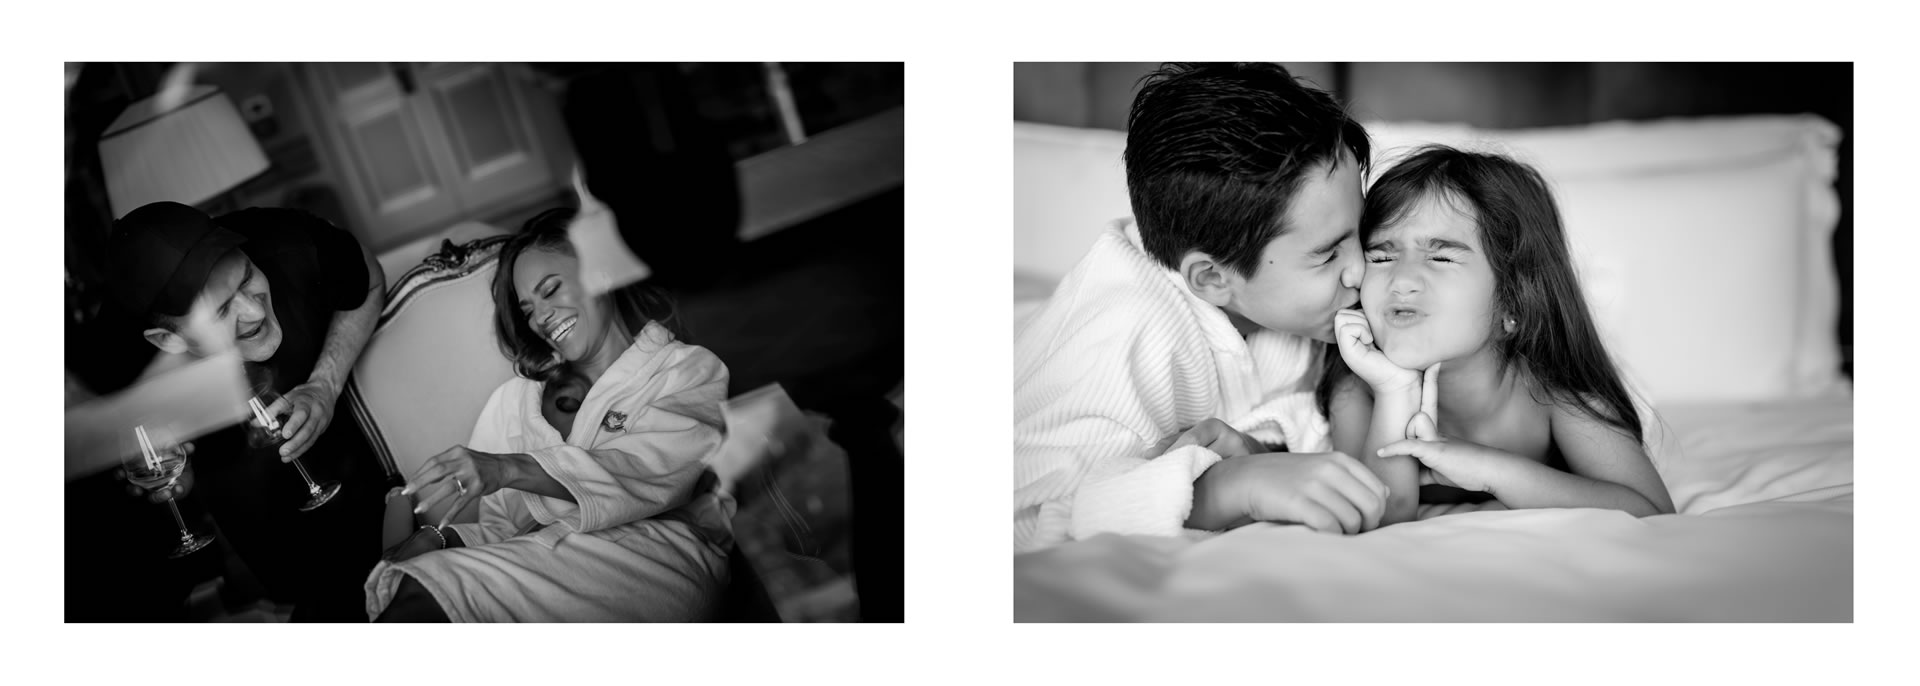 - 9 :: BEST OF 2018 WEDDING: A COLLECTION TO TELL ONE YEAR STORY :: Luxury wedding photography - 8 ::  - 9